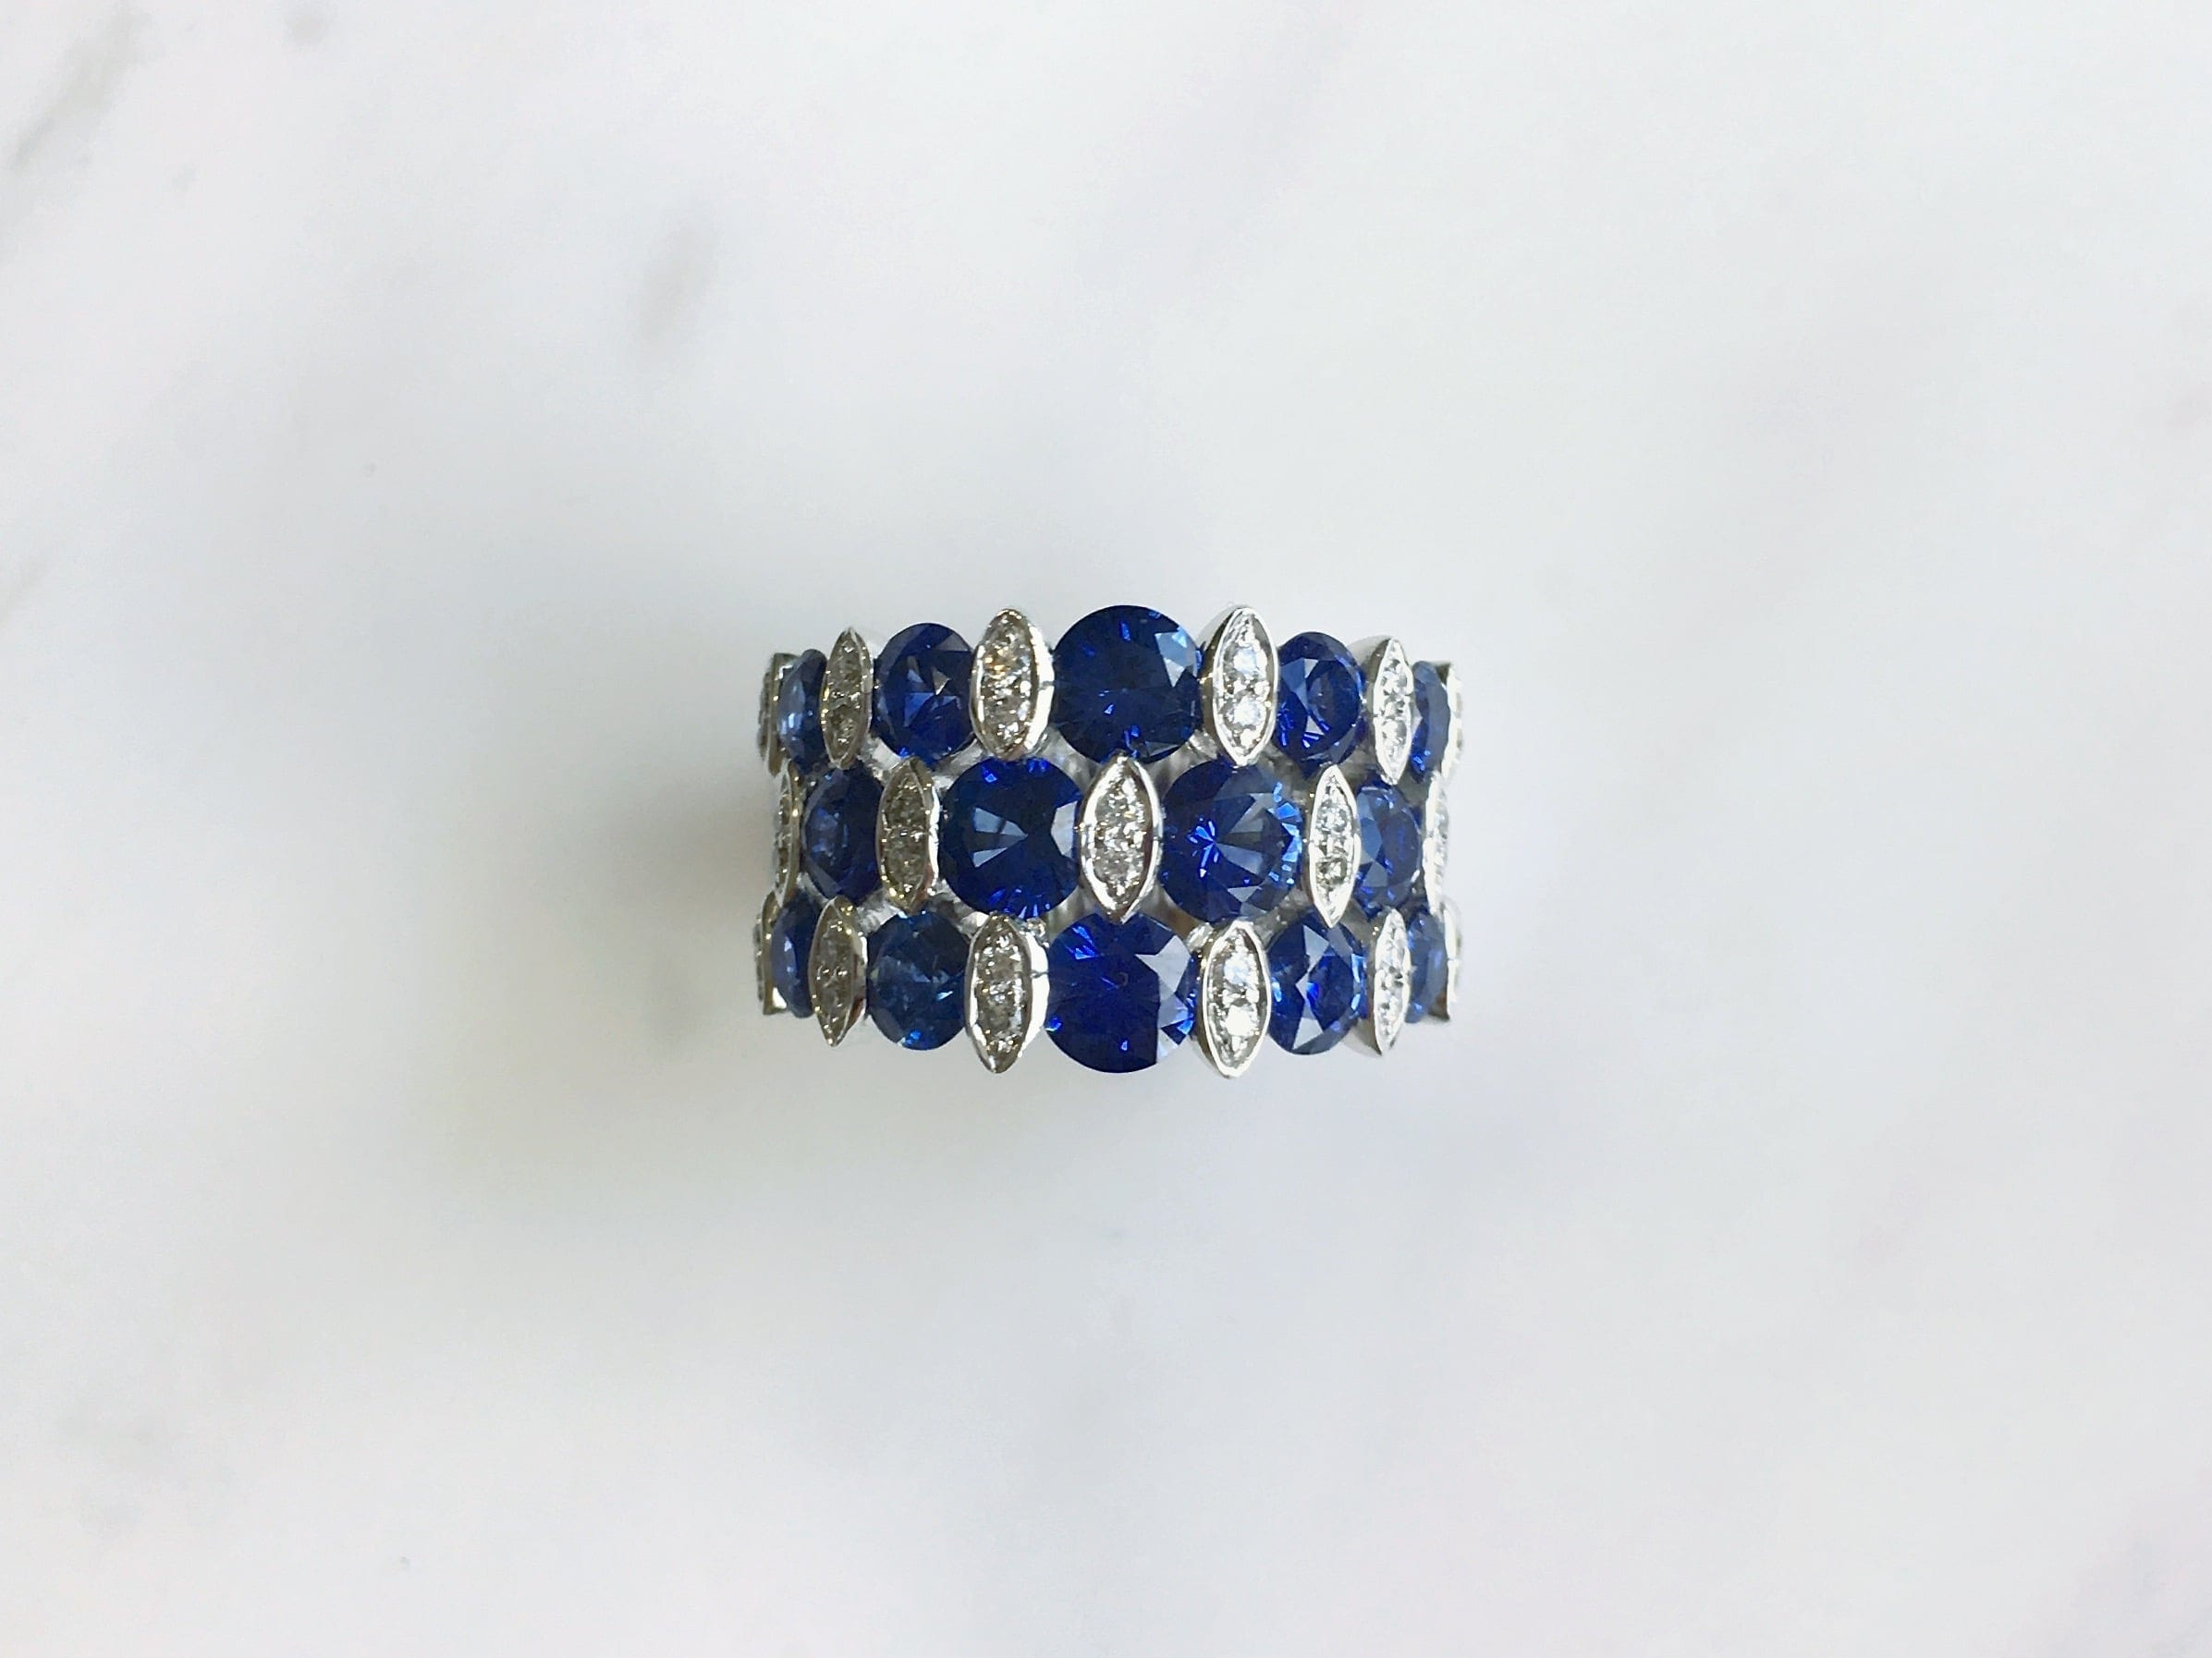 gemstone copy y buy sku hold all sapphires on blue for royal sapphire